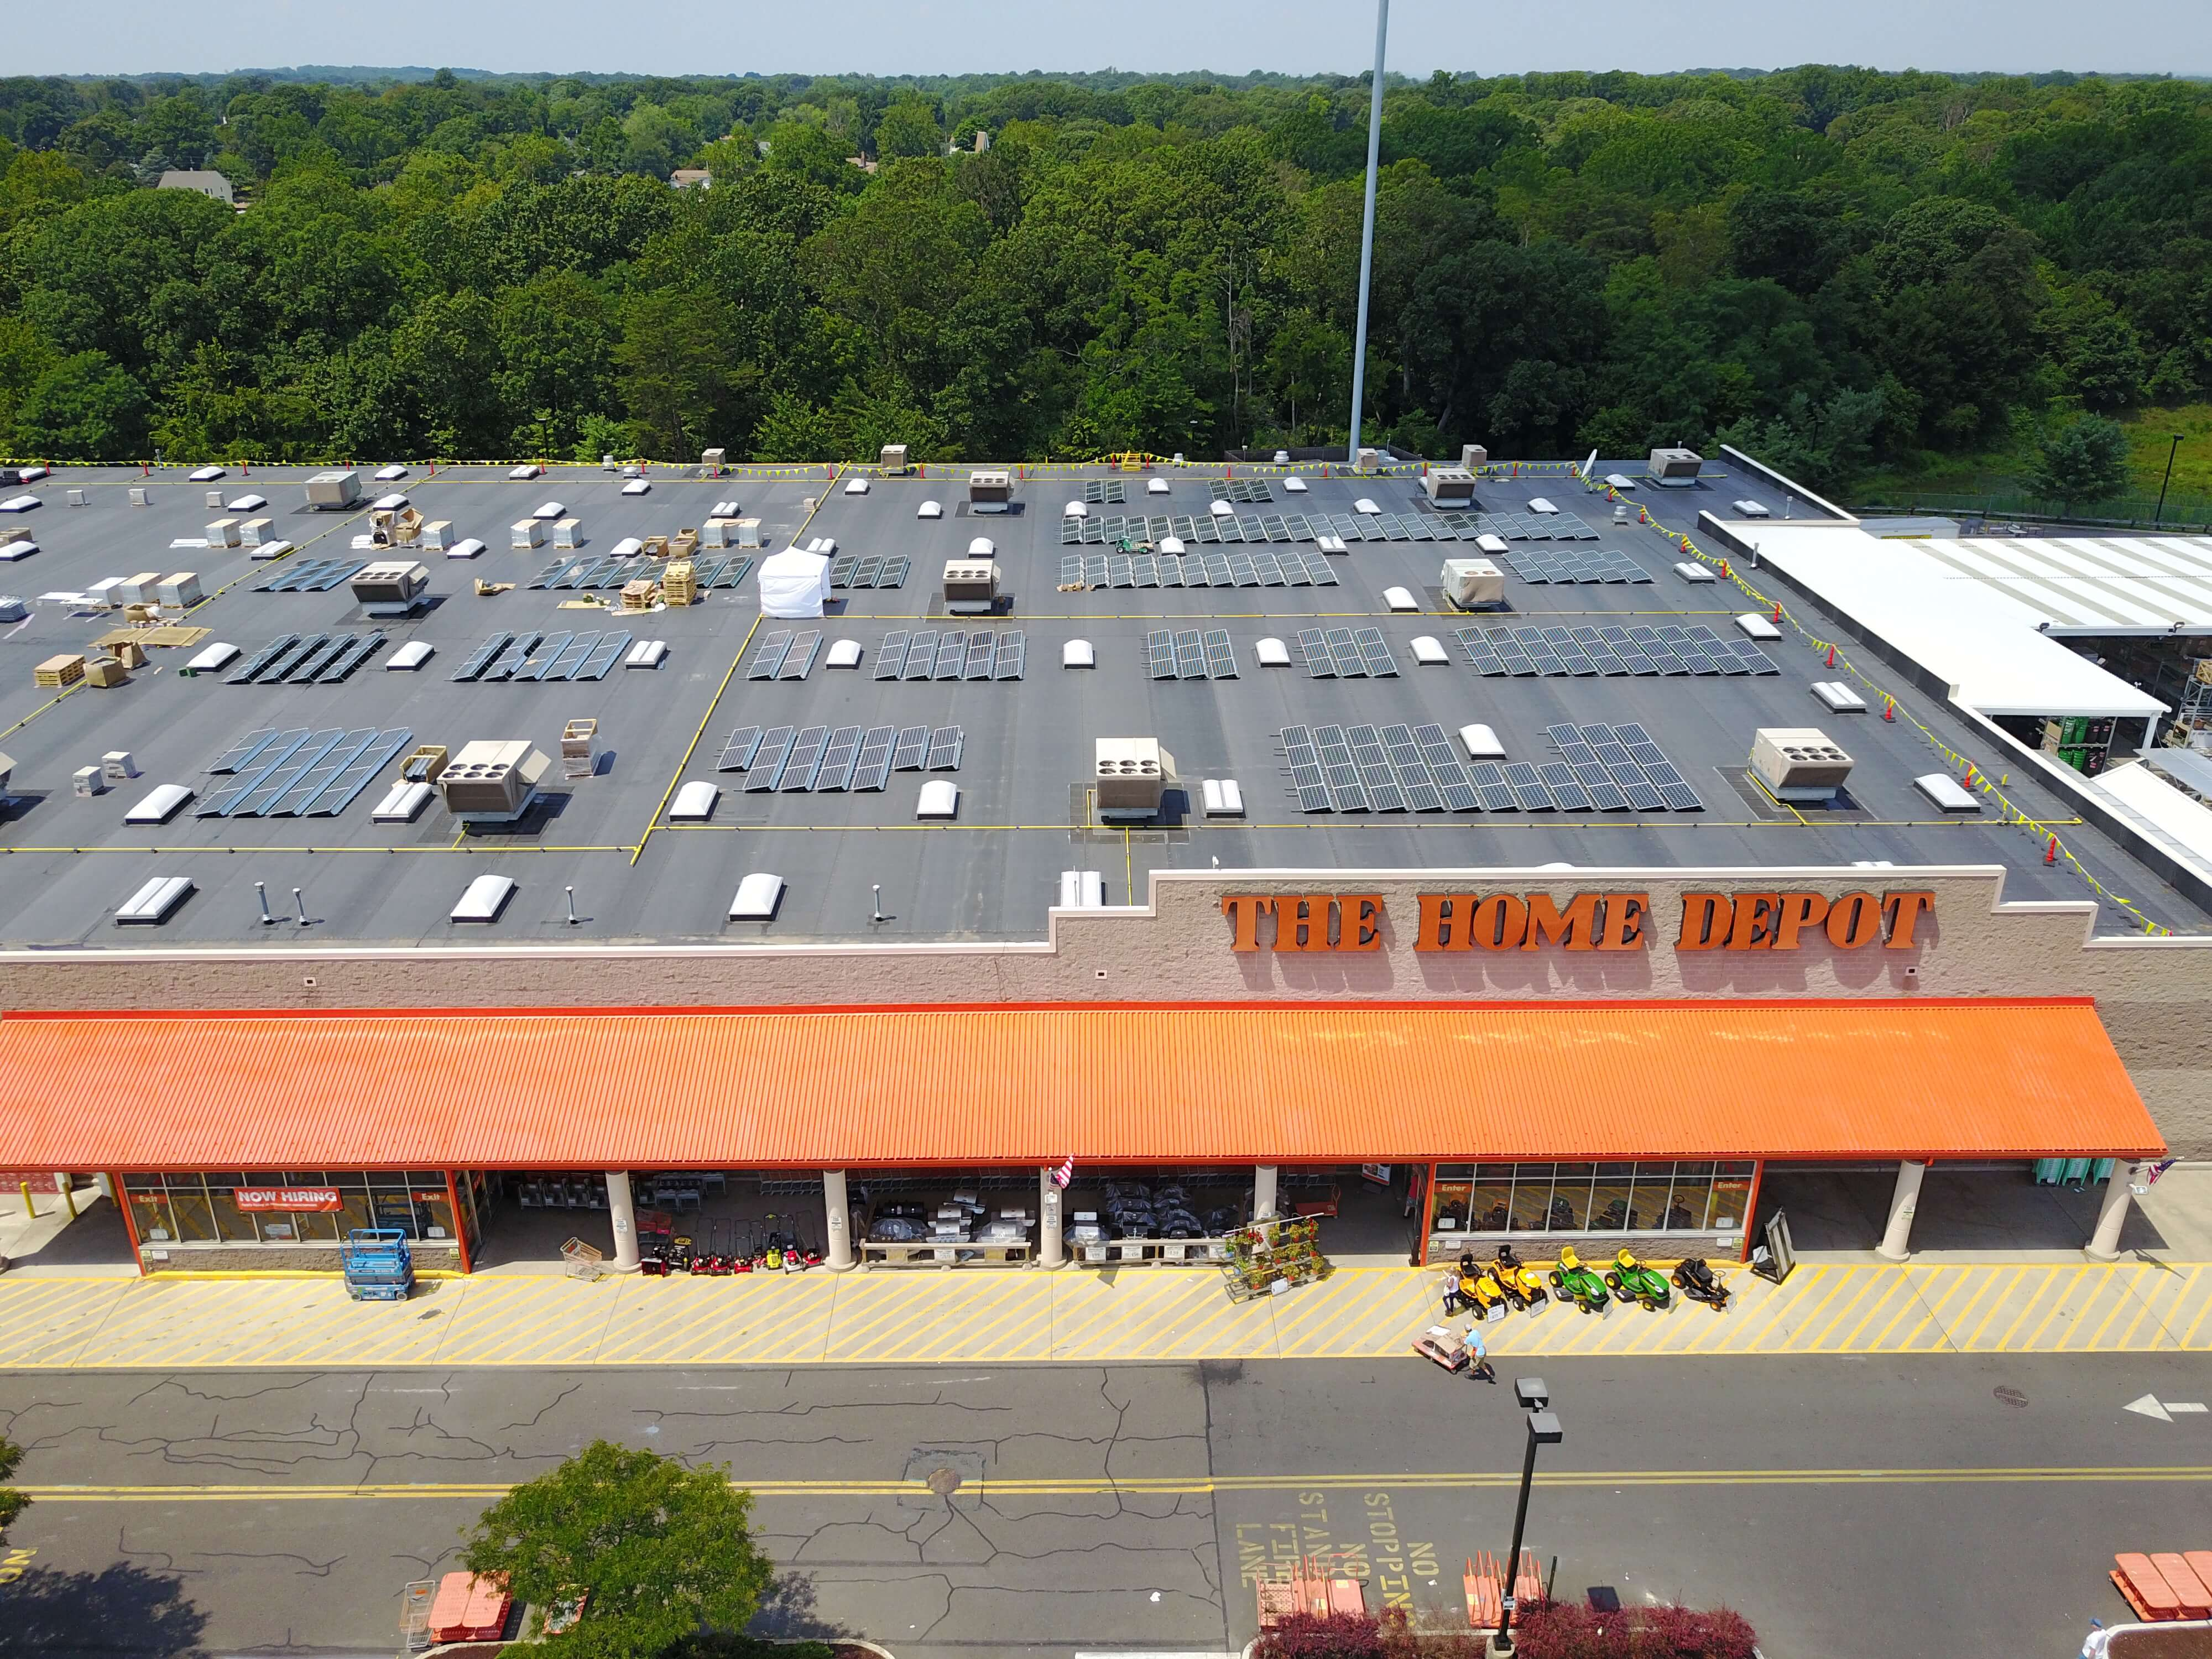 The Home Depot Adding Rooftop Solar Across The US Solar Industry